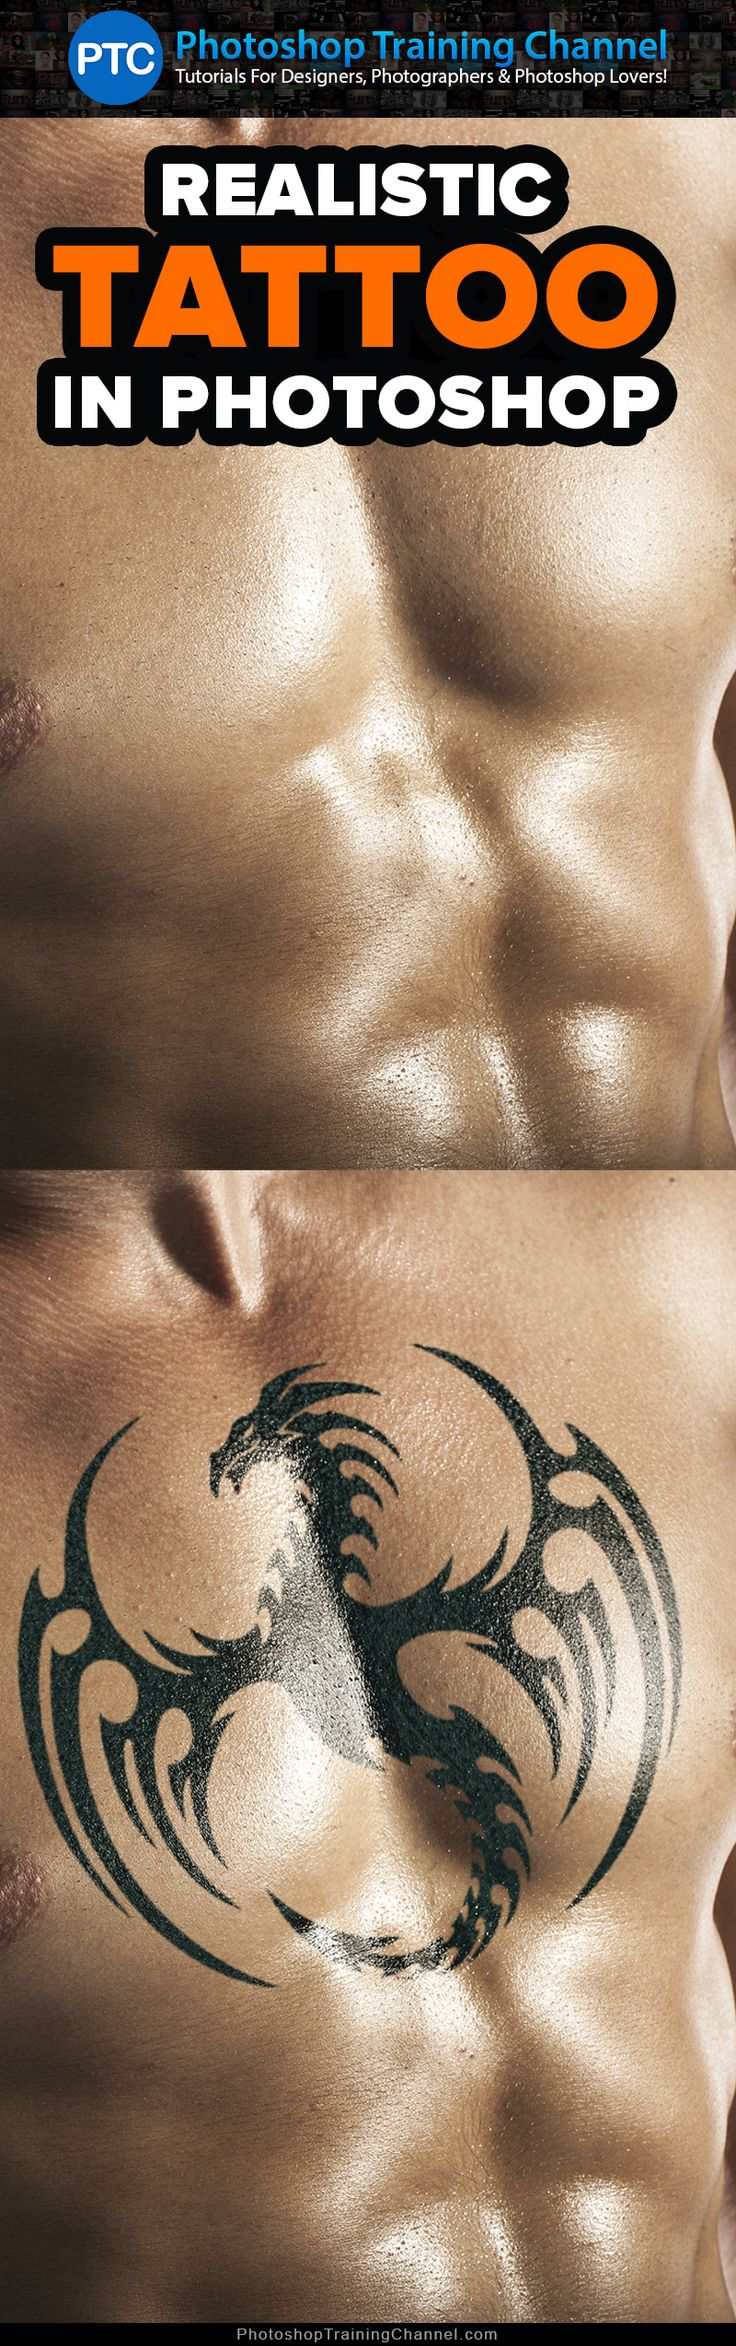 Airplane tattoo designs bodysstyle - How To Add Realistic Tattoos In Photoshop